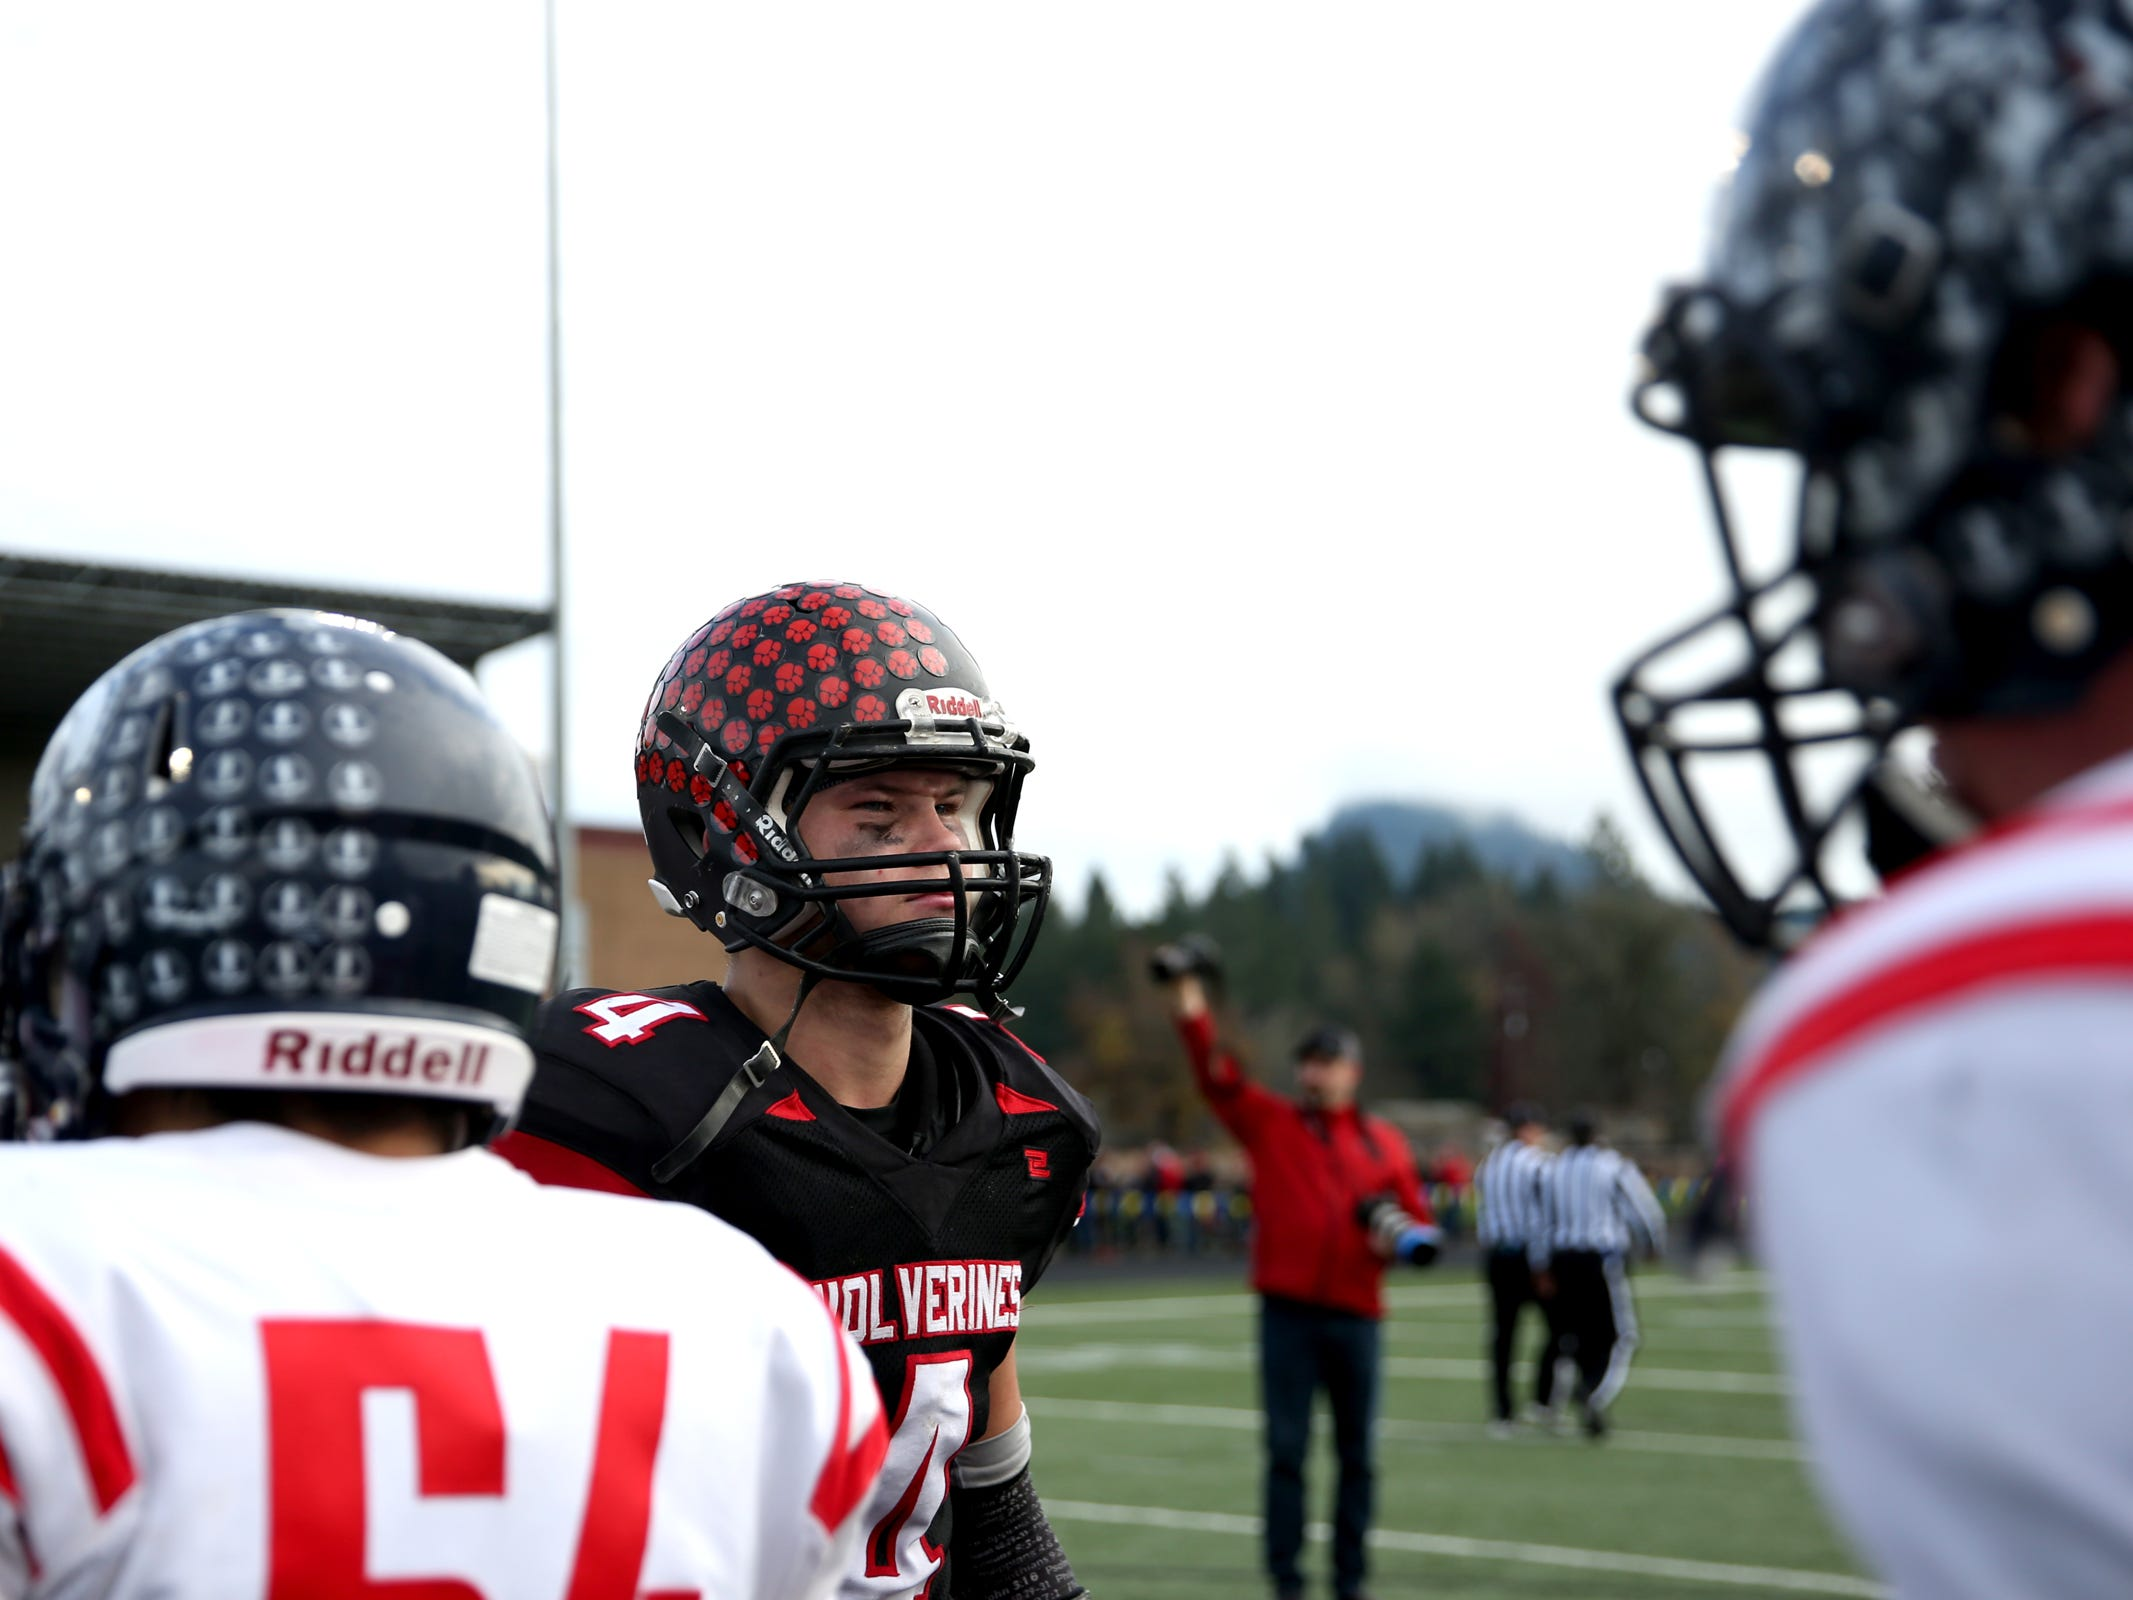 Santiam's Trevor Whitmire (4) walks off the field following the Kennedy vs. Santiam OSAA Class 2A state championship football game at Cottage Grove High School in Cottage Grove on Saturday, Nov. 24, 2018. Kennedy won the championship 31-20.